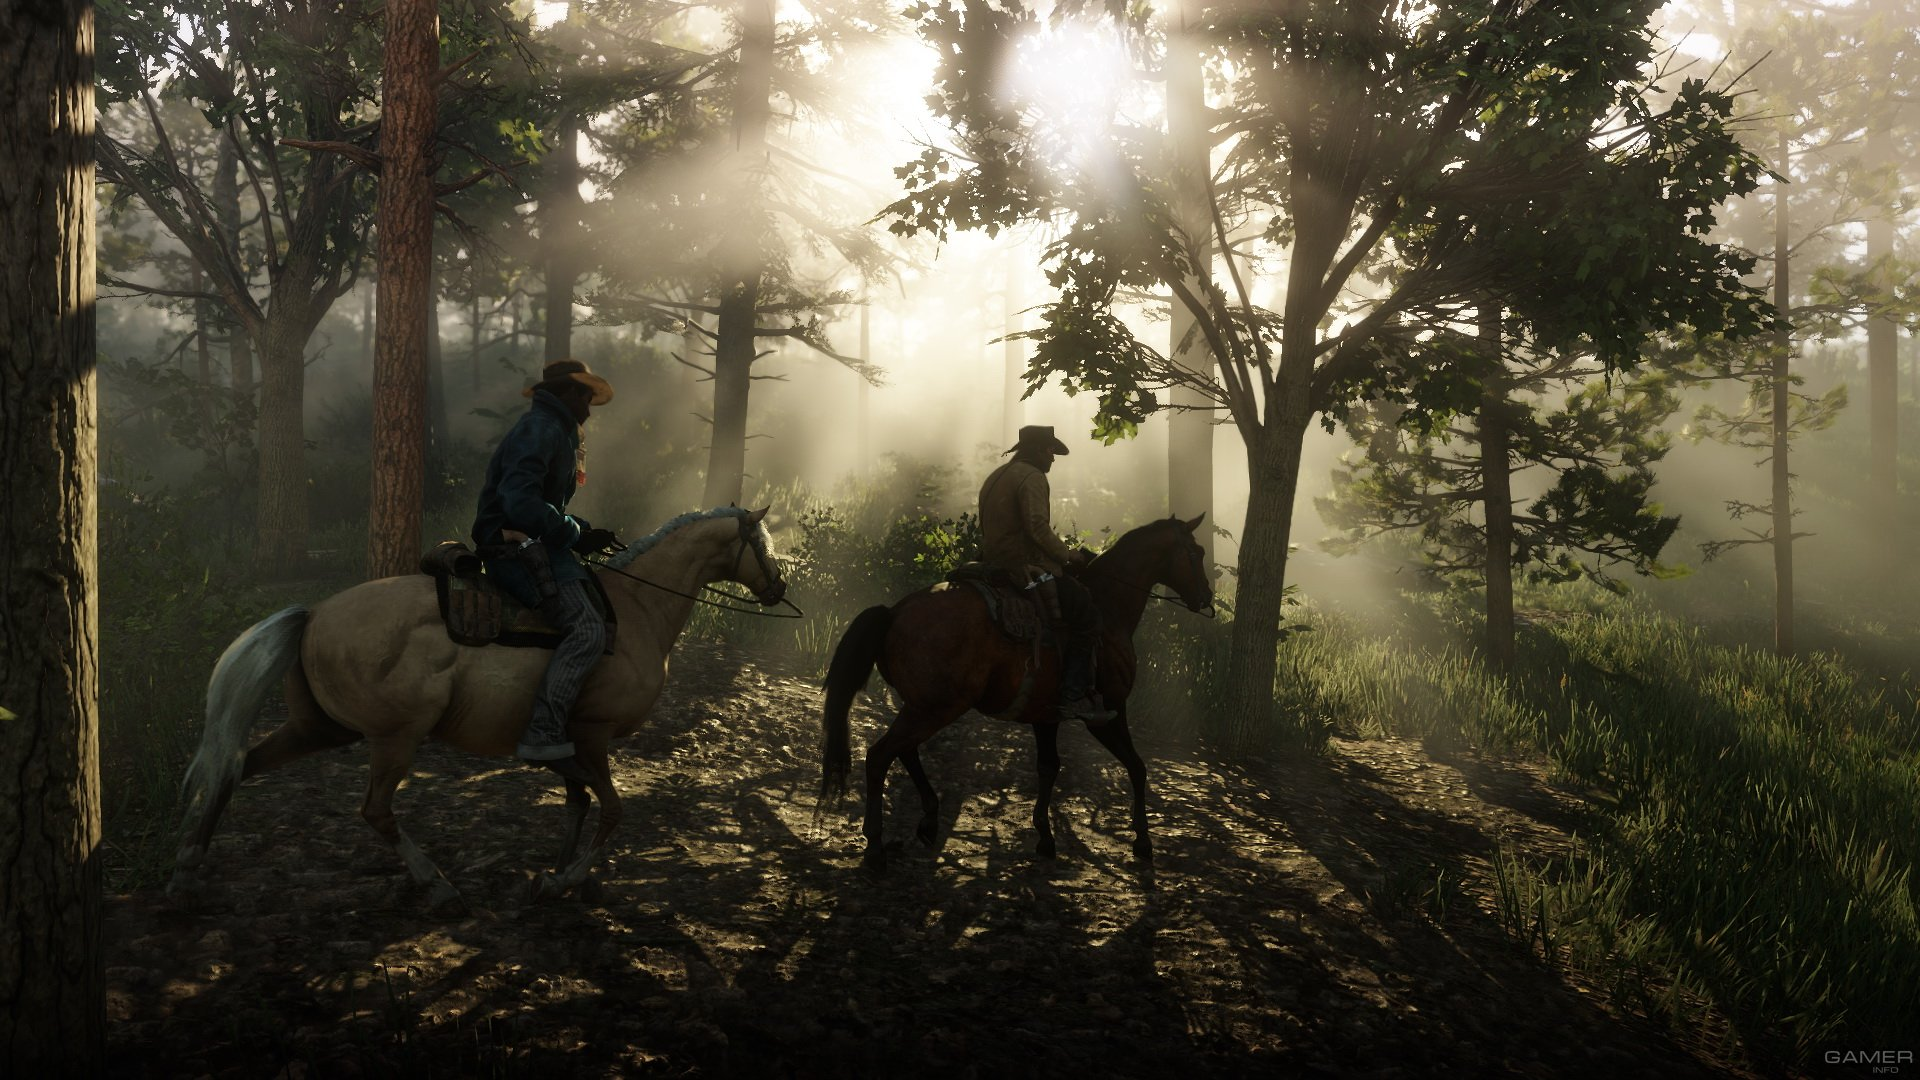 Игра PS4 Red Dead Redemption 2. Фото N2